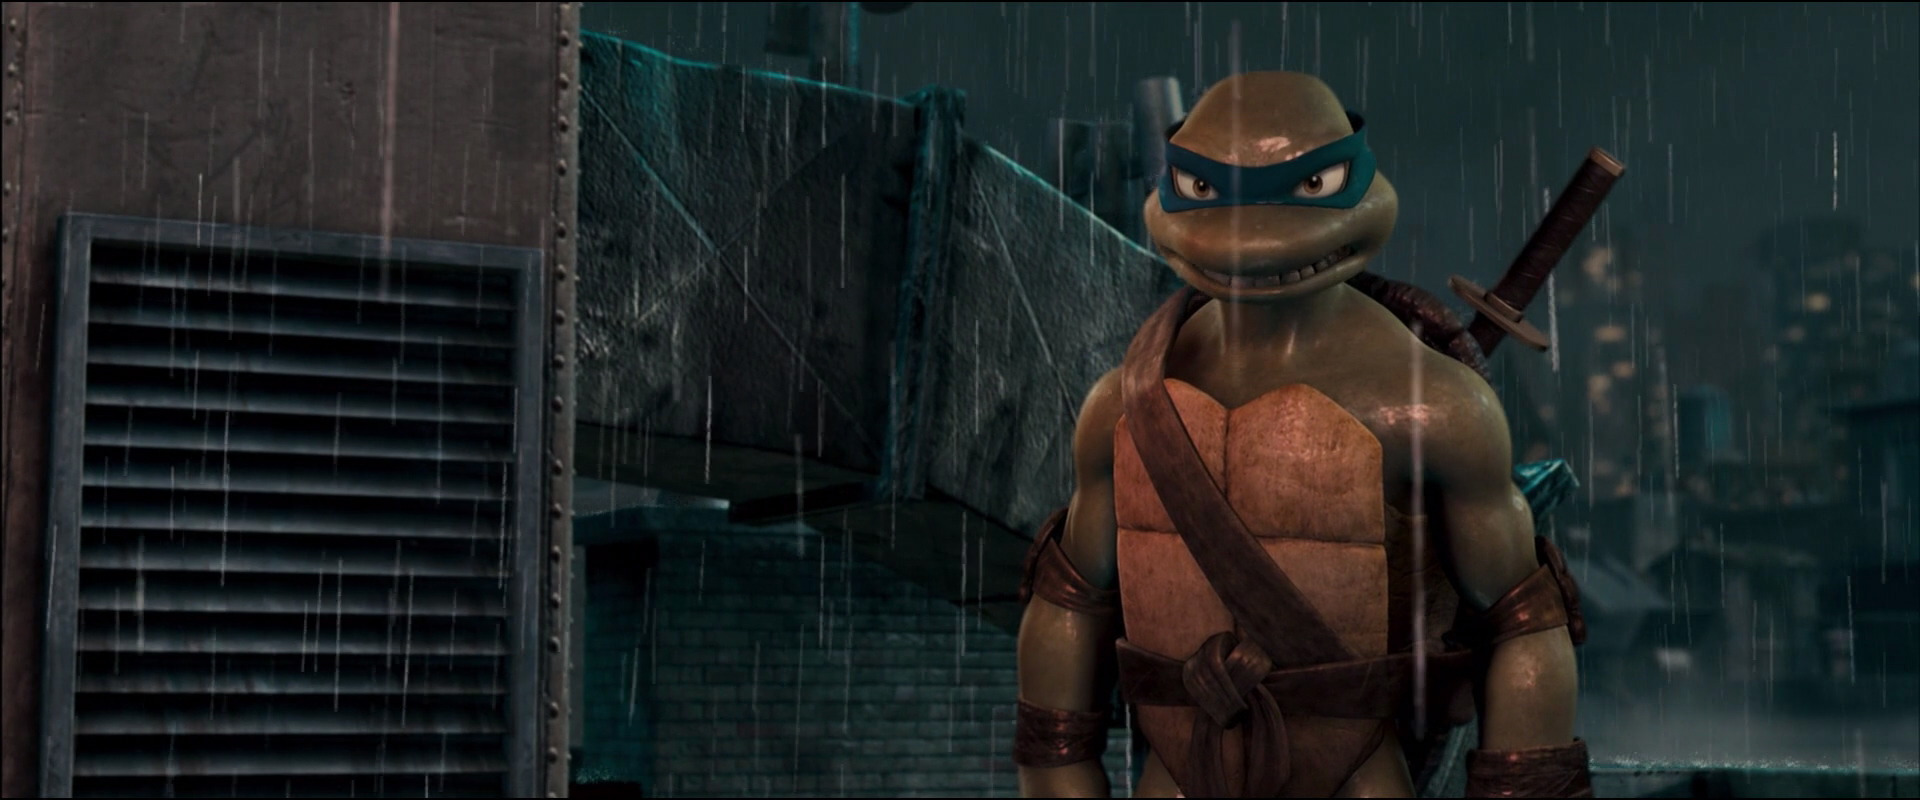 2007 S Tmnt Was A Better Teenage Mutant Ninja Turtles Movie Than You Think Unleash The Fanboy